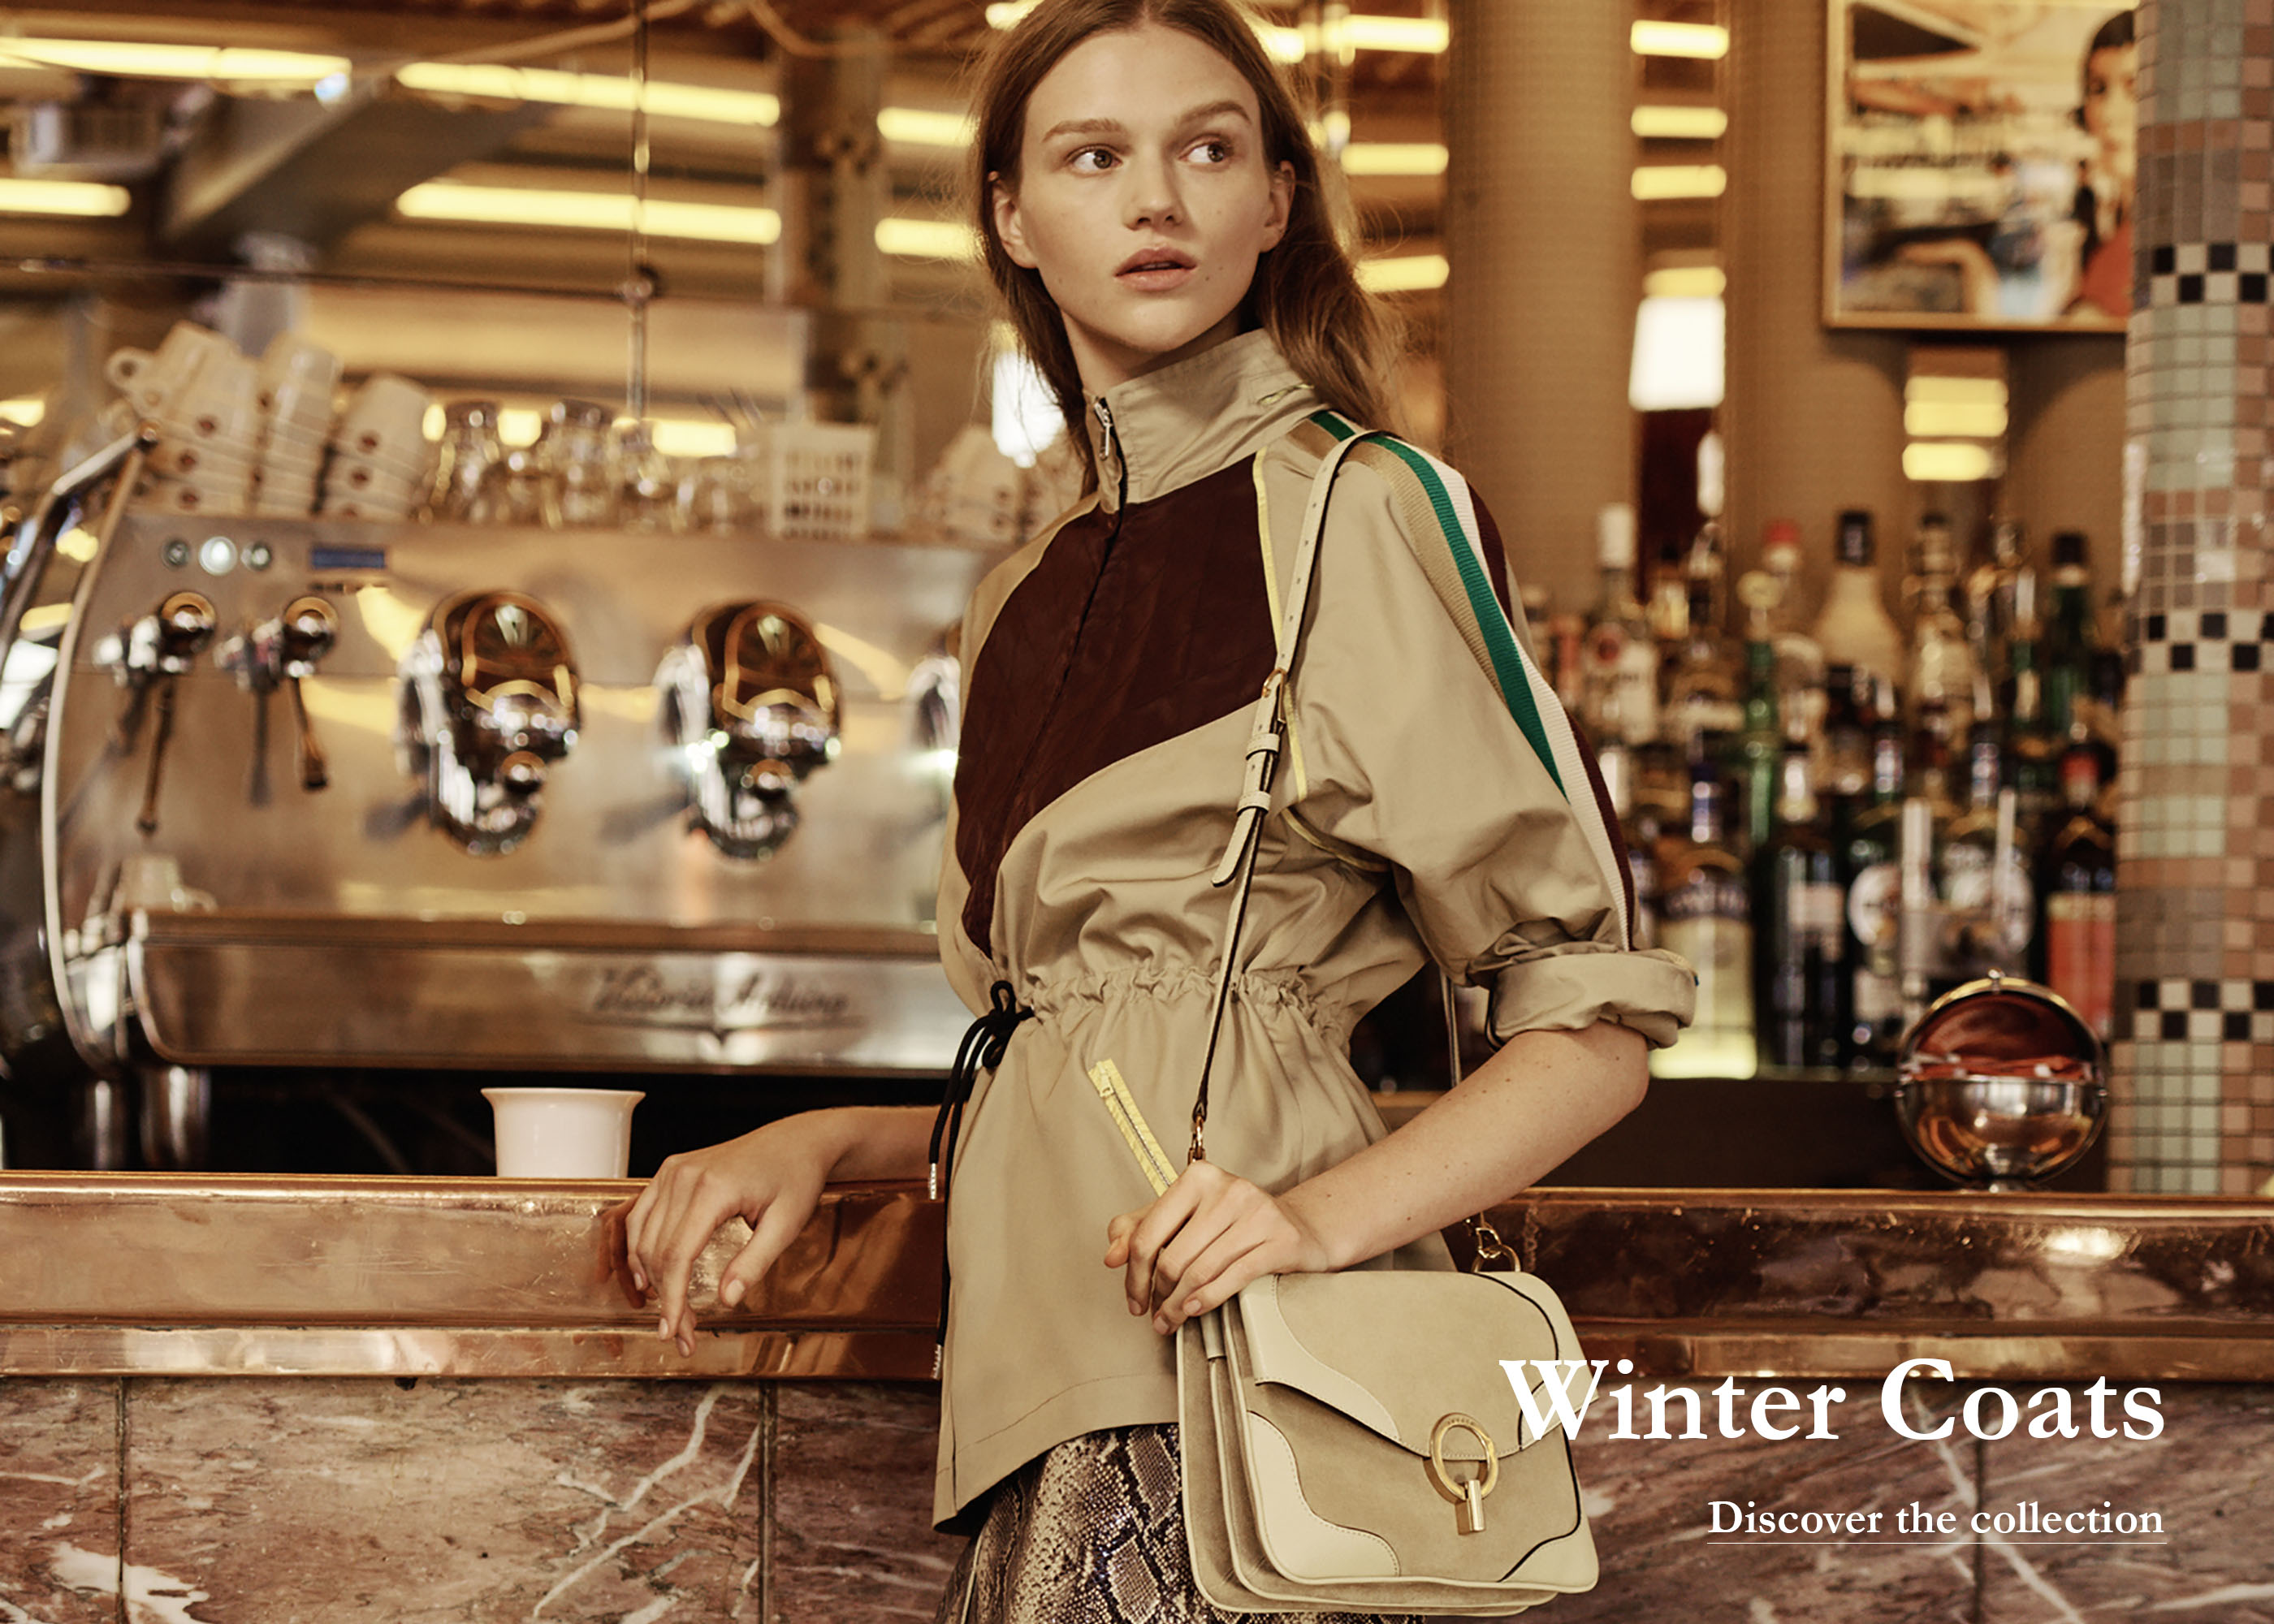 winter-coats-main-banner-4.jpg